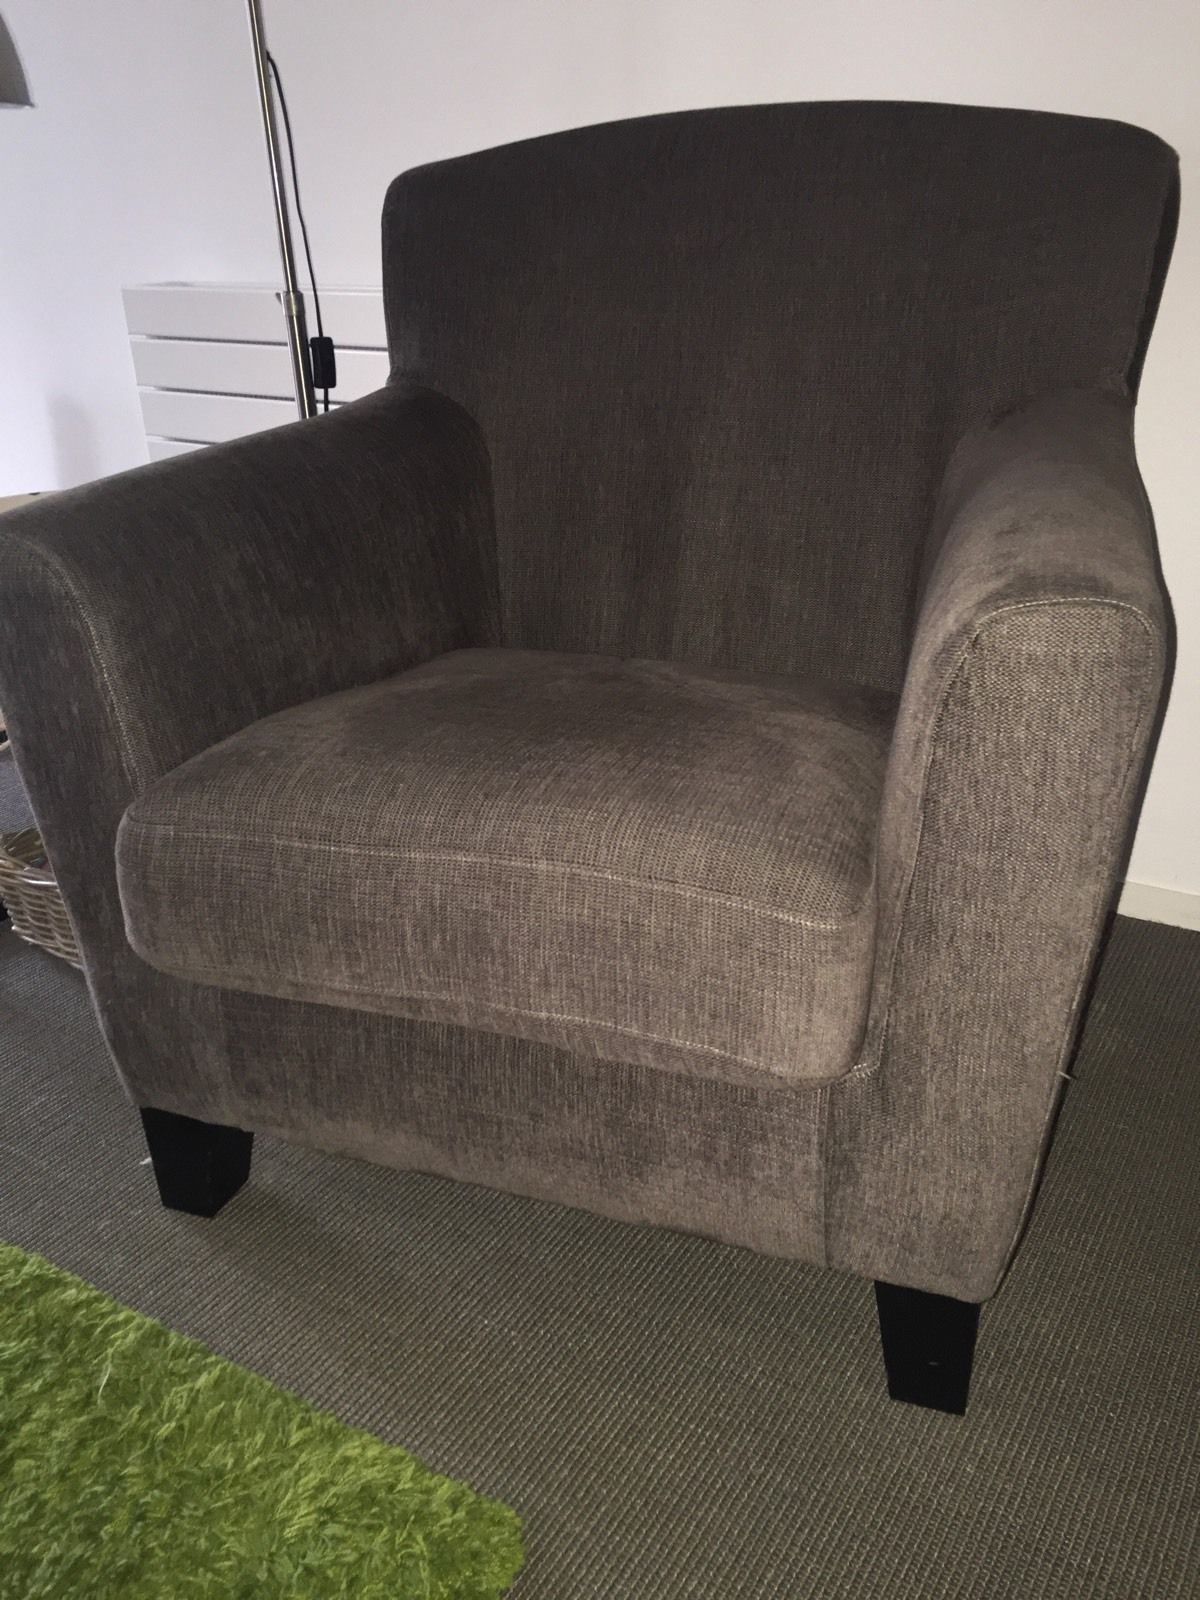 ikea-ekenas-armchair-in-brown-great-condition-_57